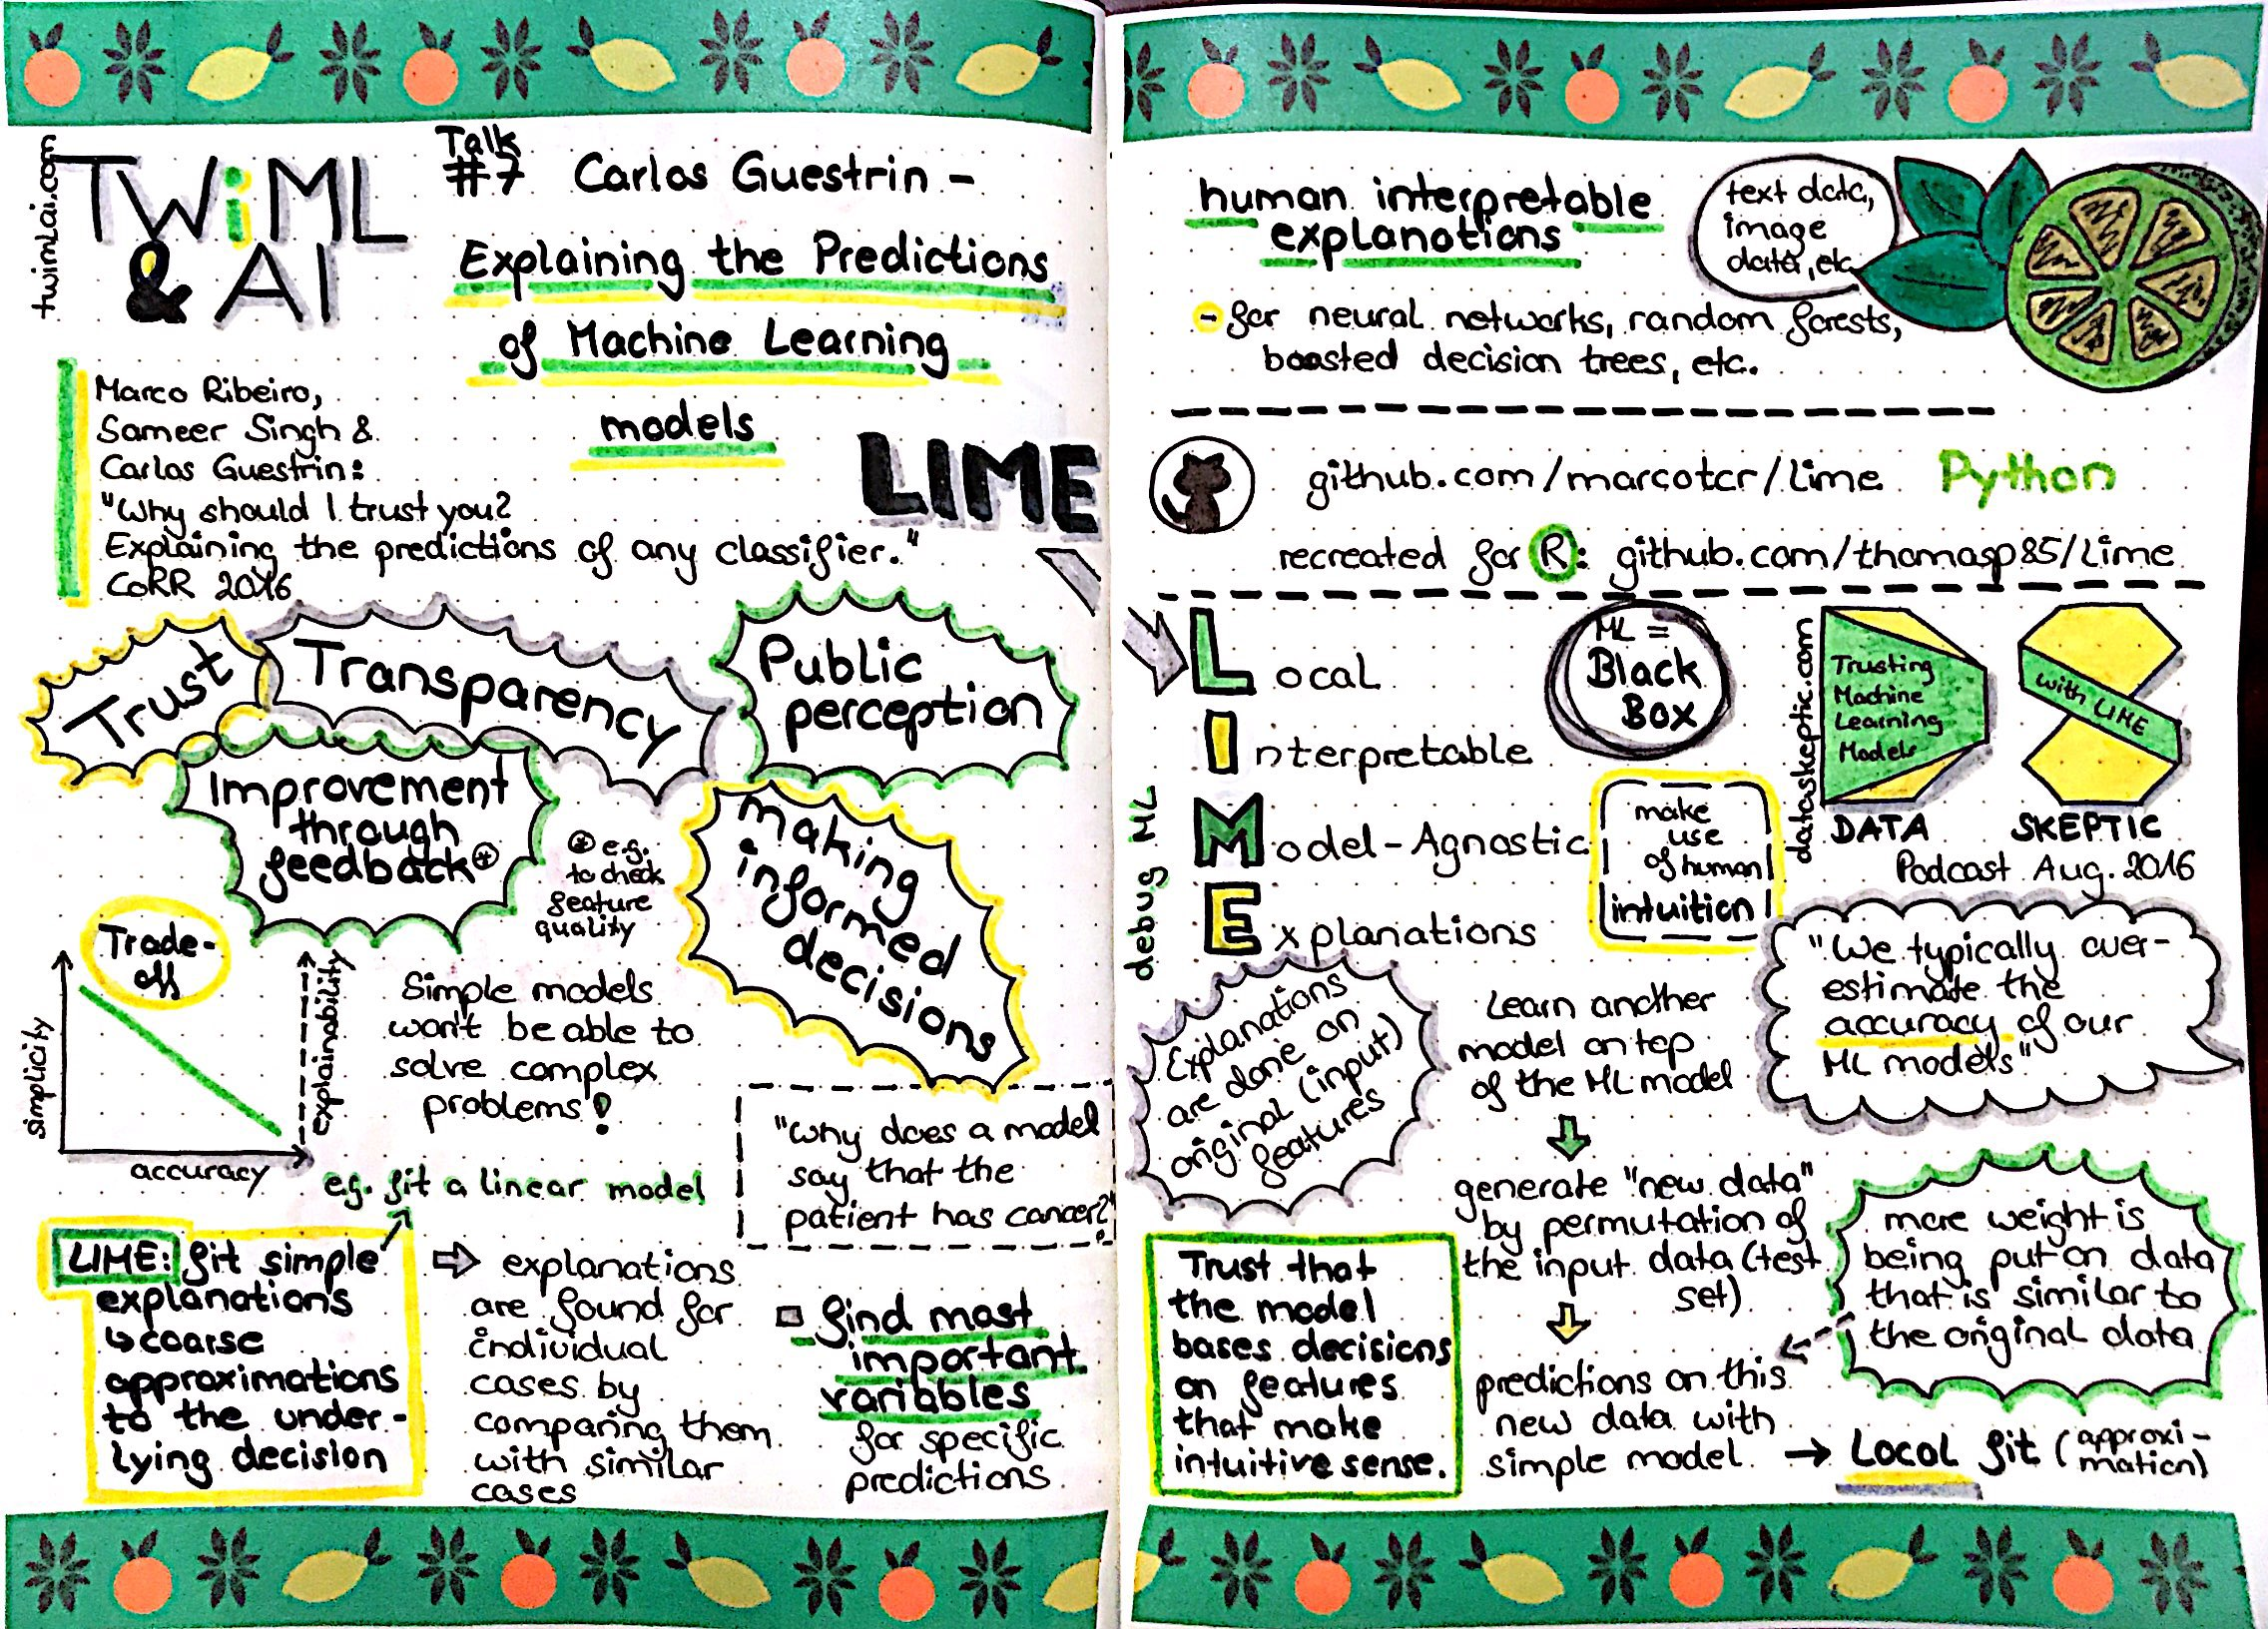 Sketchnotes: TWiML Talk #7 with Carlos Guestrin – Explaining the Predictions of Machine Learning Models & Data Skeptic Podcast - Trusting Machine Learning Models with Lime